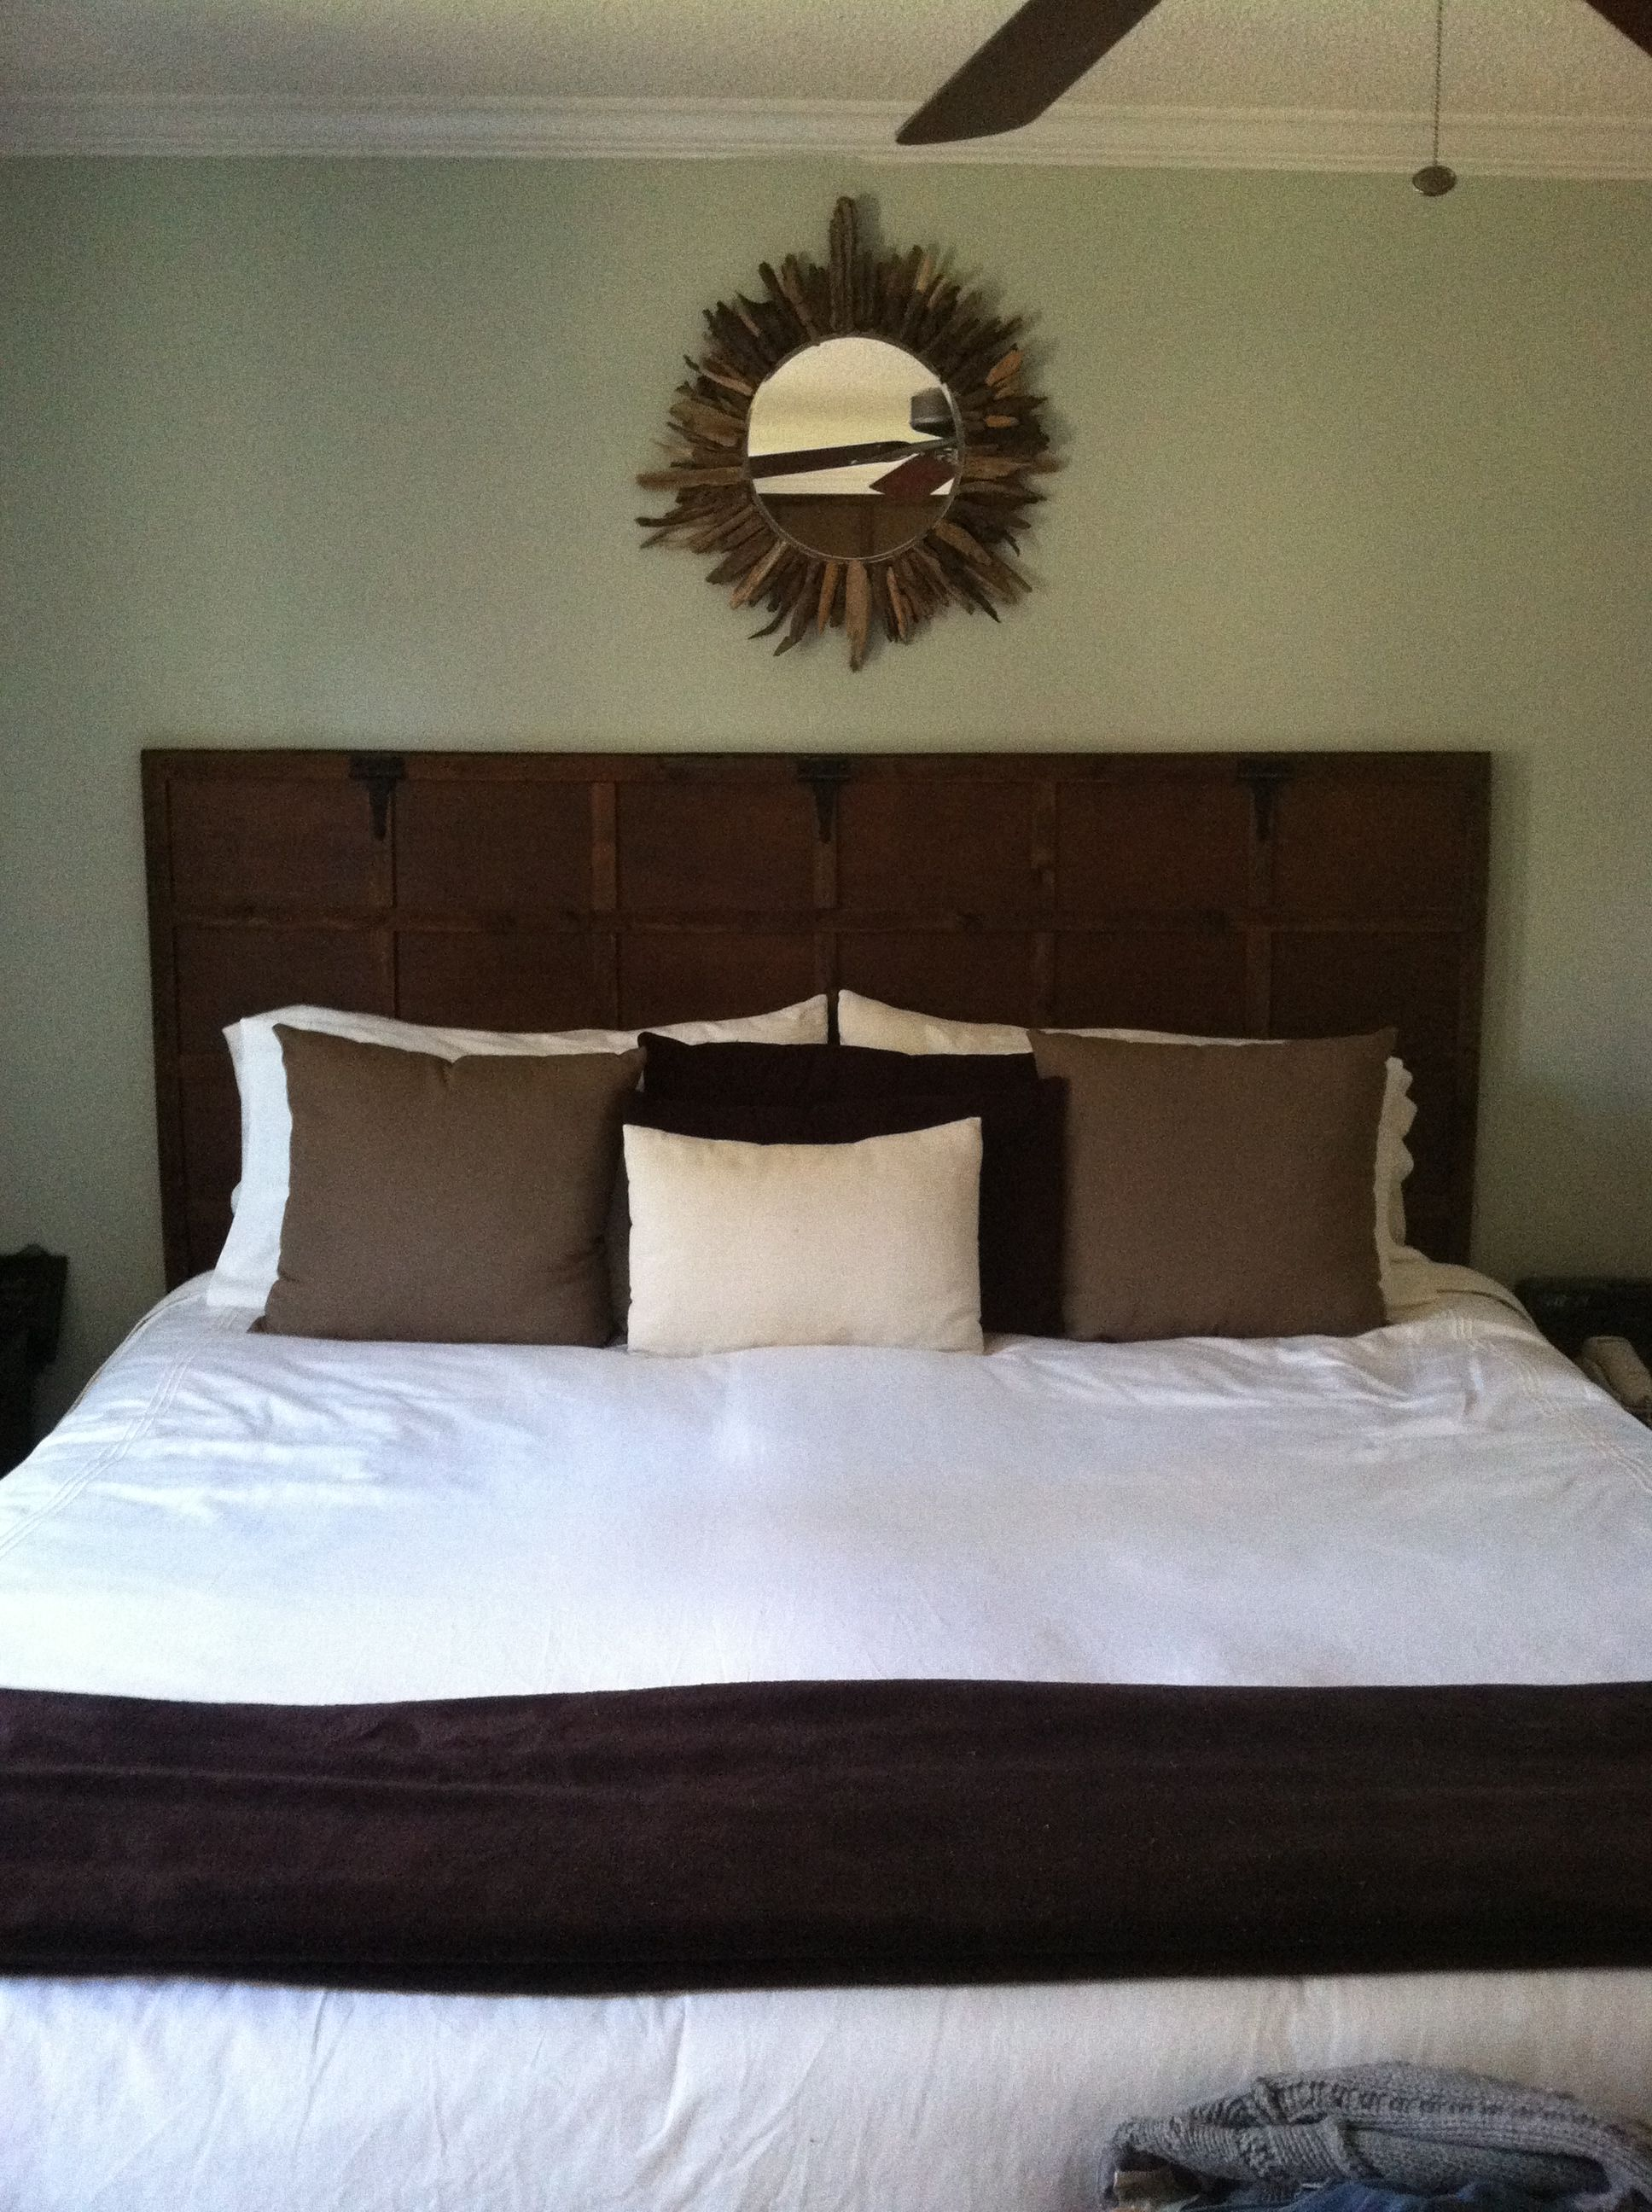 Headboard made from a hollow core door and made to look